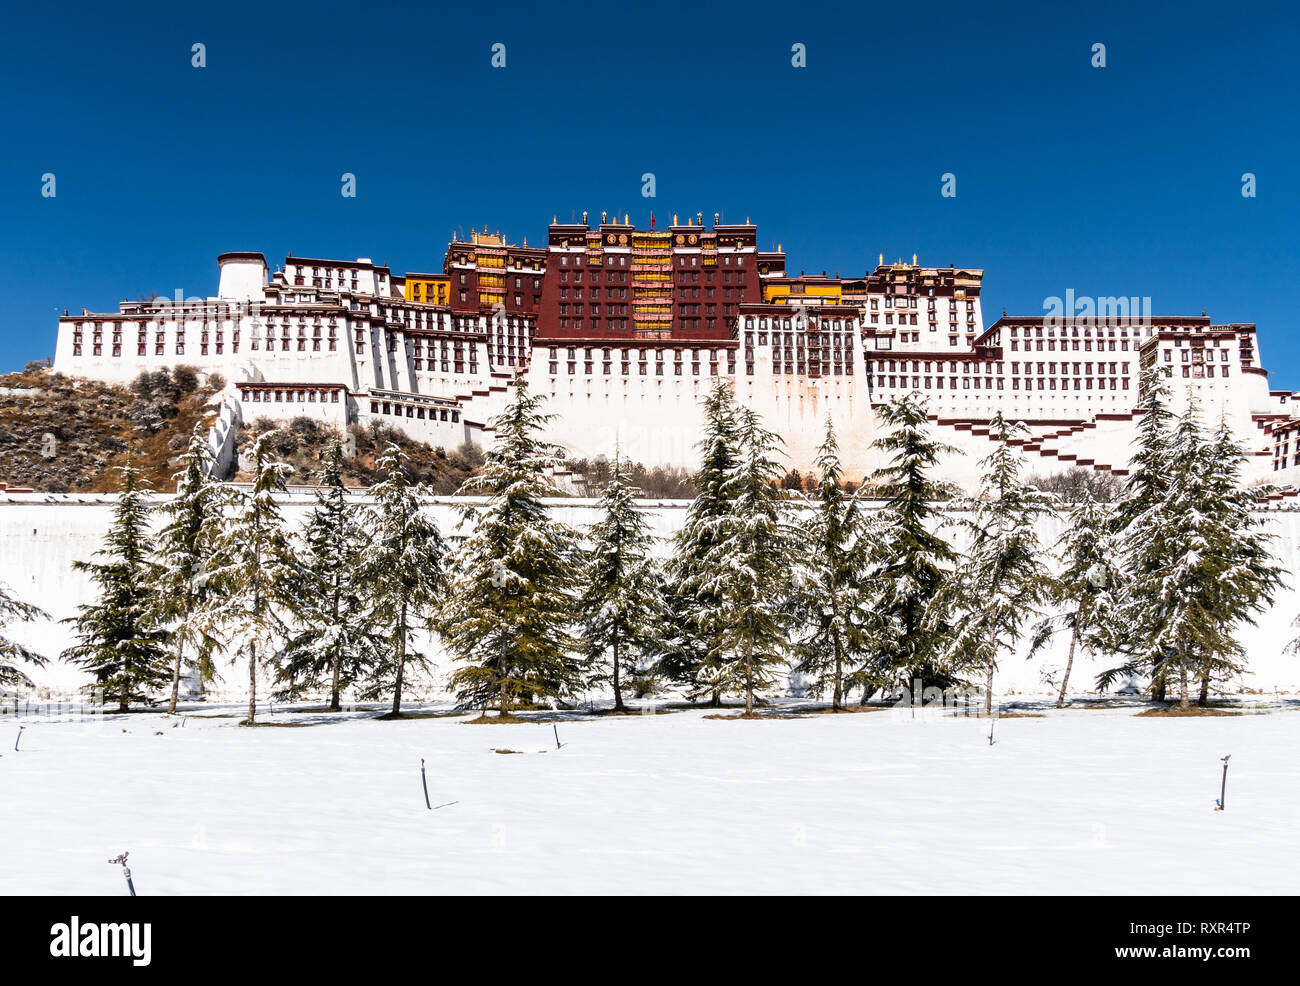 The famous Potala palace on a sunny winter day in Lhasa in Tibet, China. - Stock Image